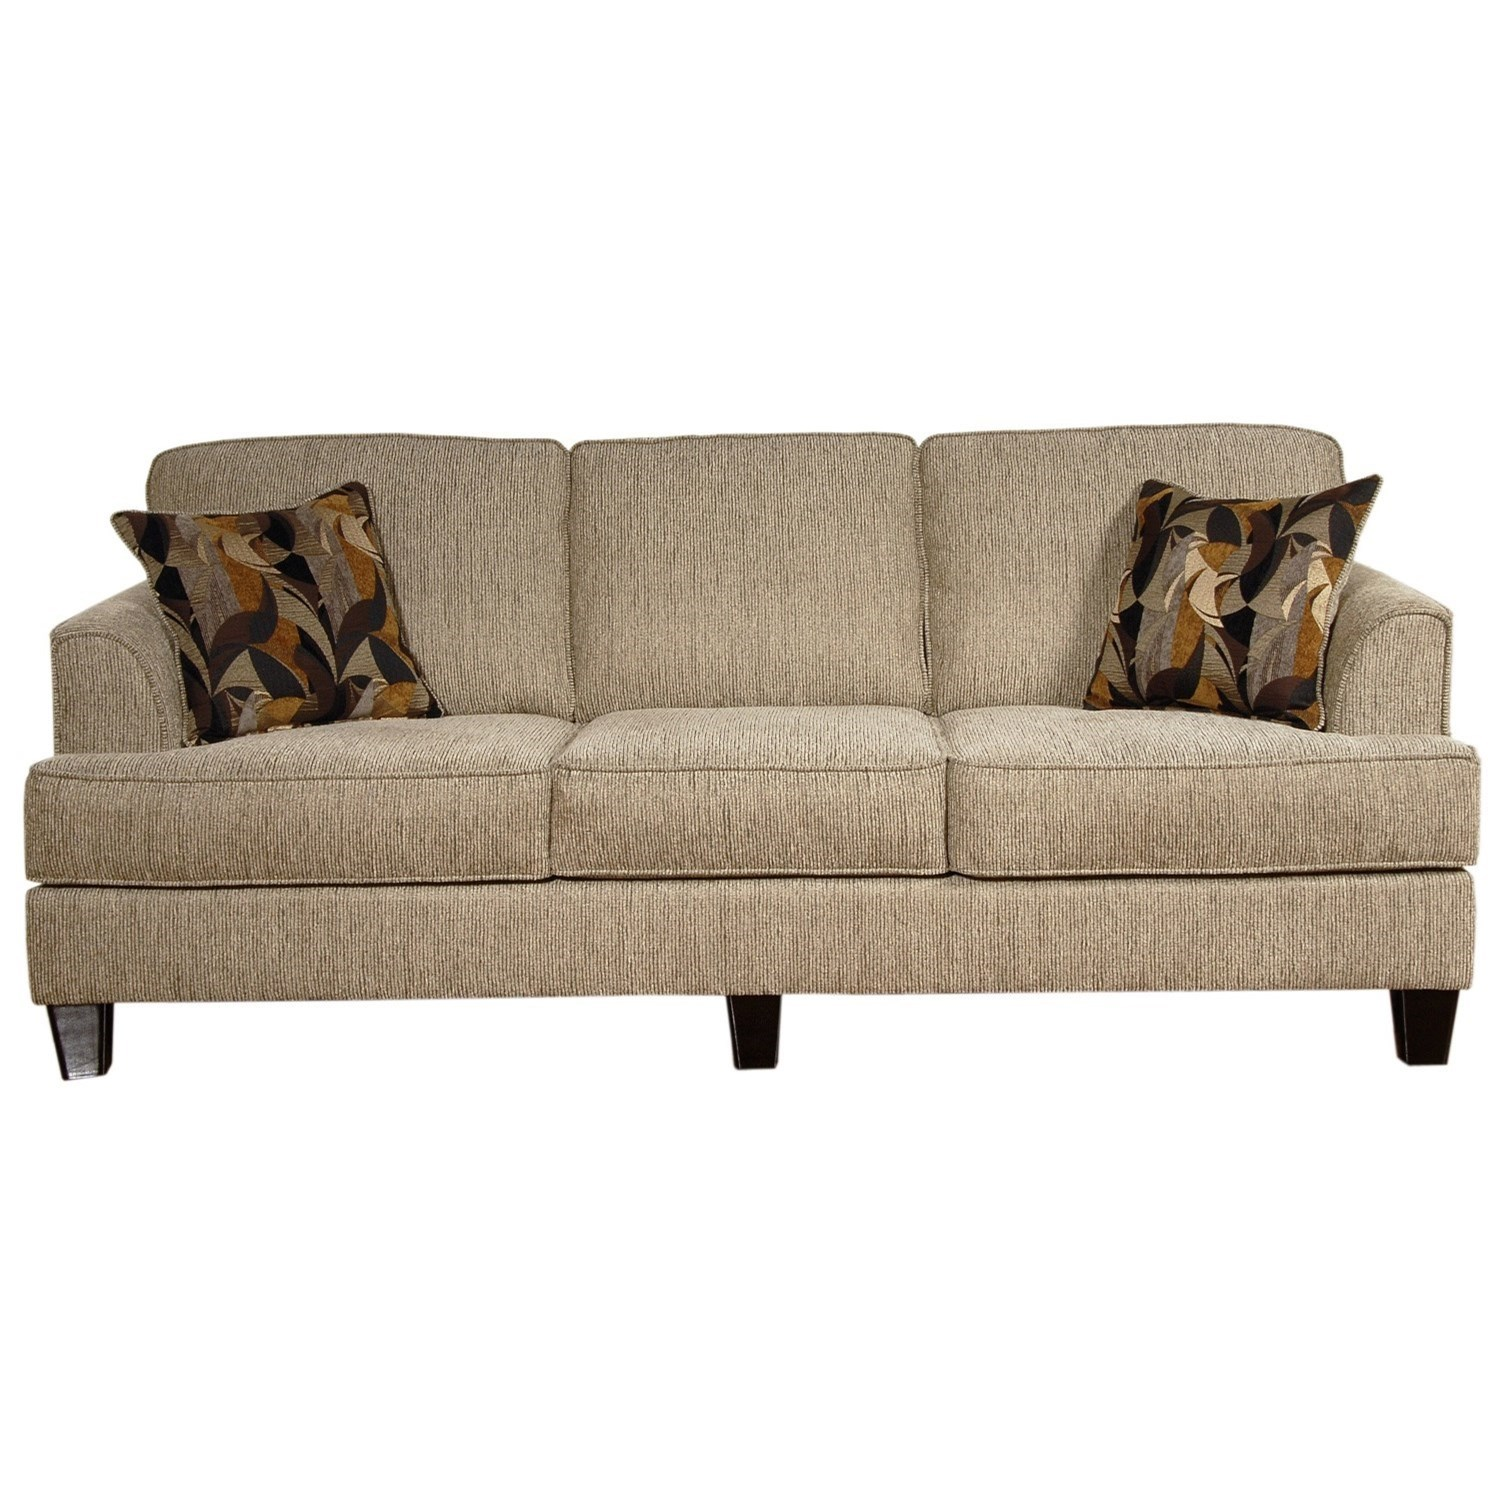 5600 Contemporary Sofa by Serta Upholstery by Hughes Furniture at Rooms for Less